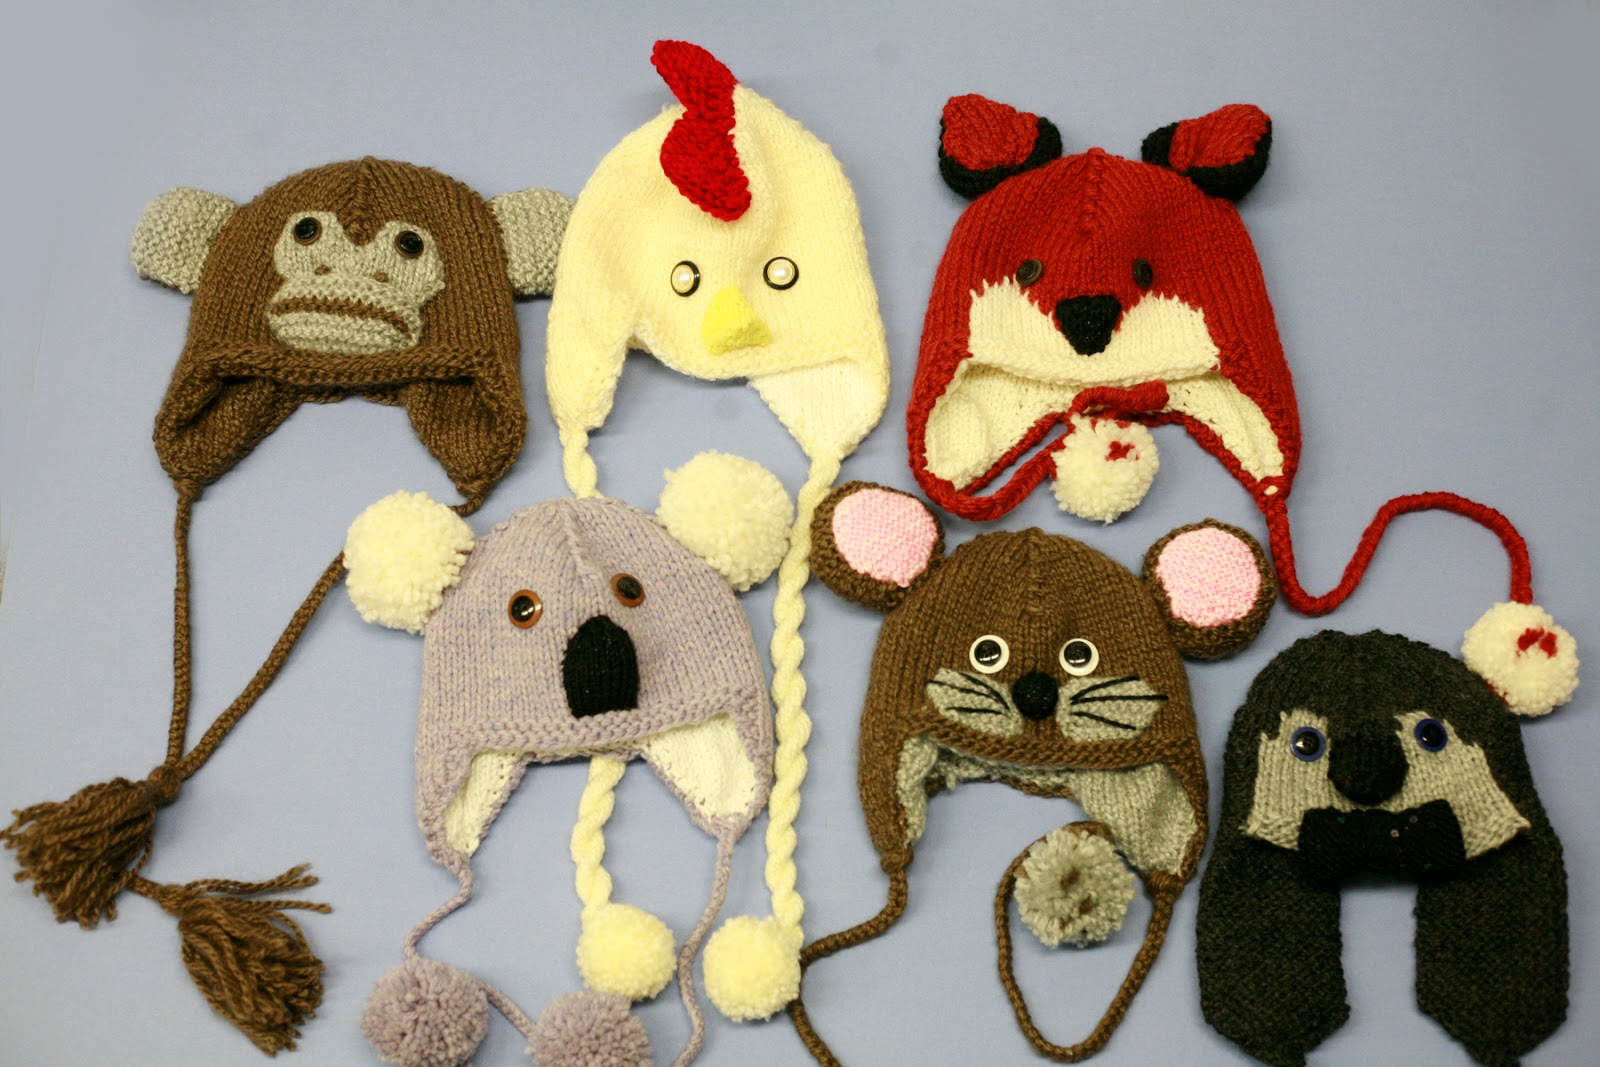 Knitting Patterns Hats Animals : Ben Franklin Crafts and Frame Shop: DIY Knitted Animal Hats